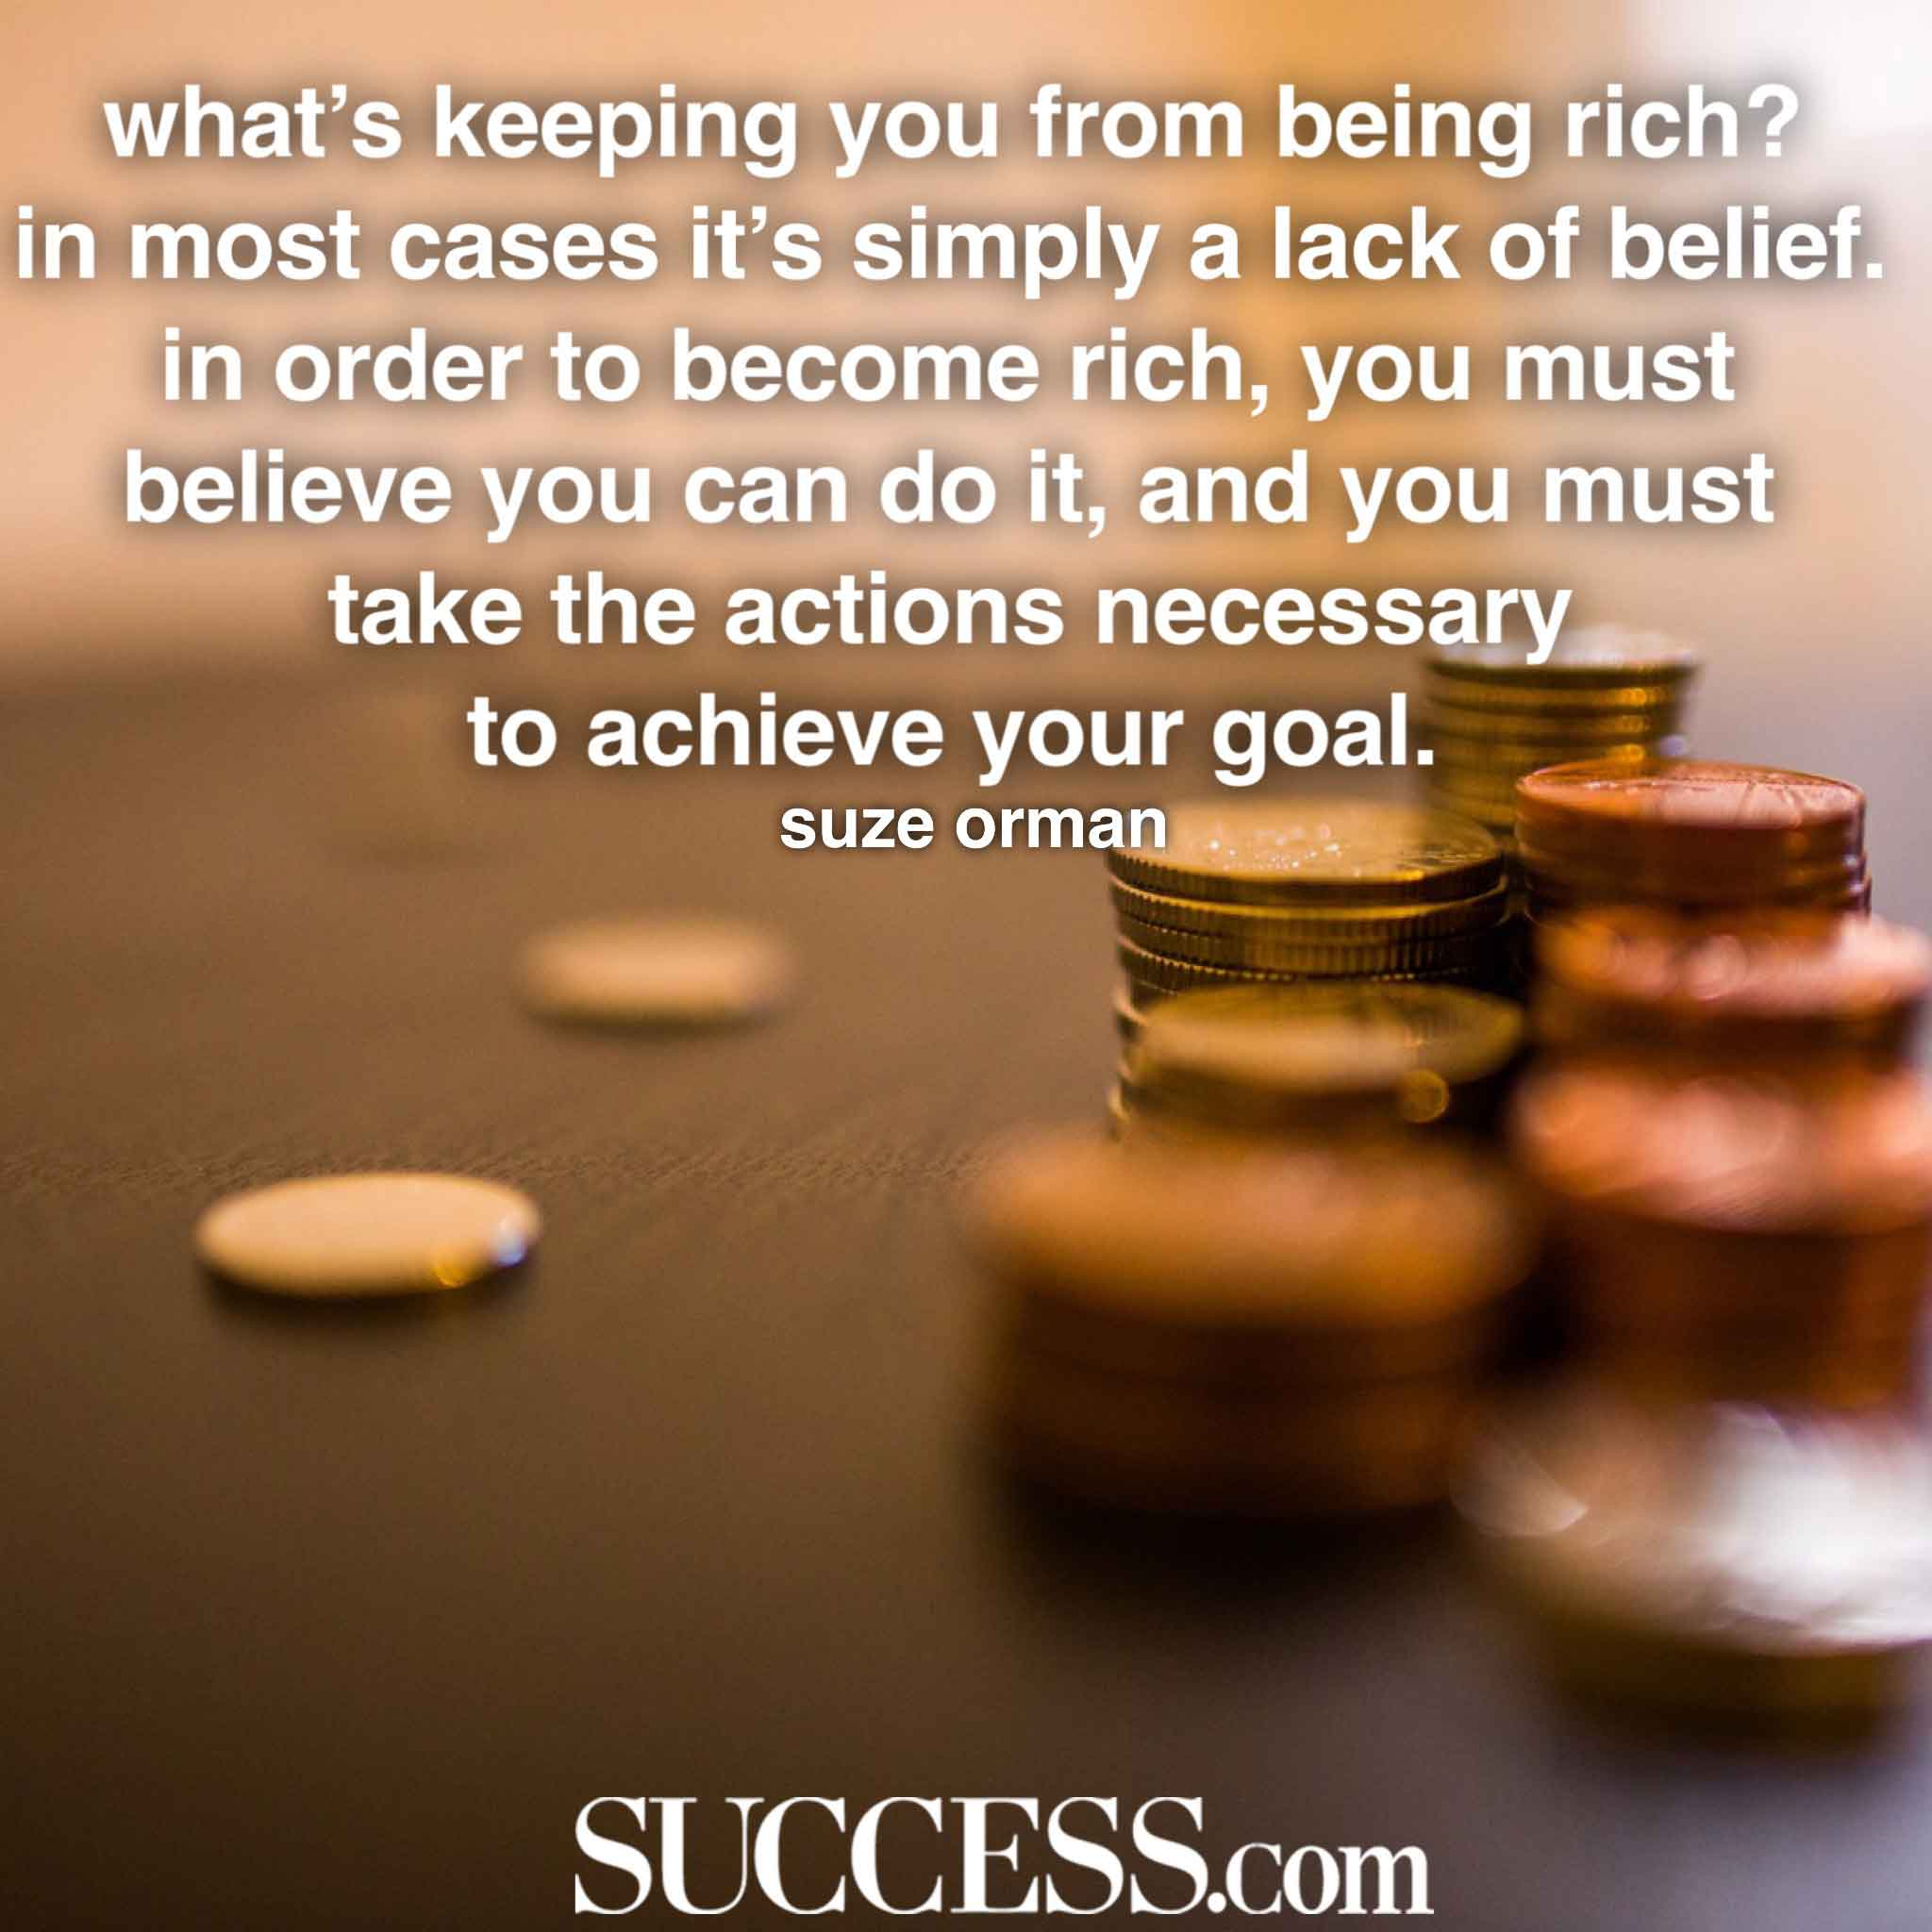 Motivational Inspirational Quotes: 17 Motivating Quotes About Becoming Rich